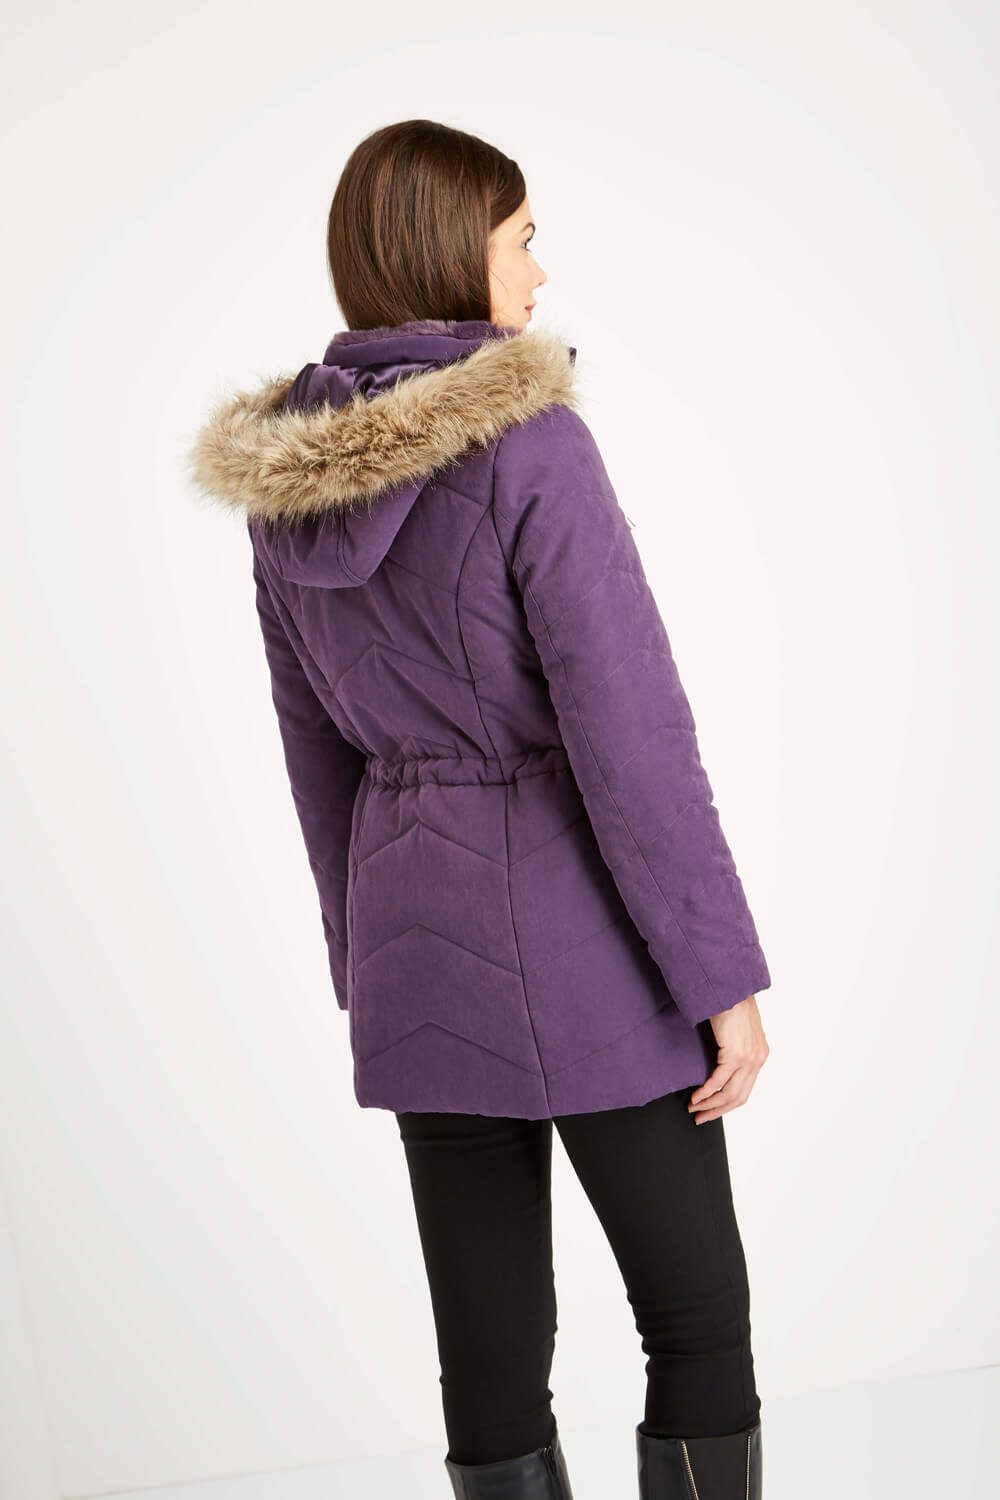 Roman-Originals-Women-039-s-Blue-Quilted-Parka-Coat-with-Hood-Sizes-10-20 thumbnail 23